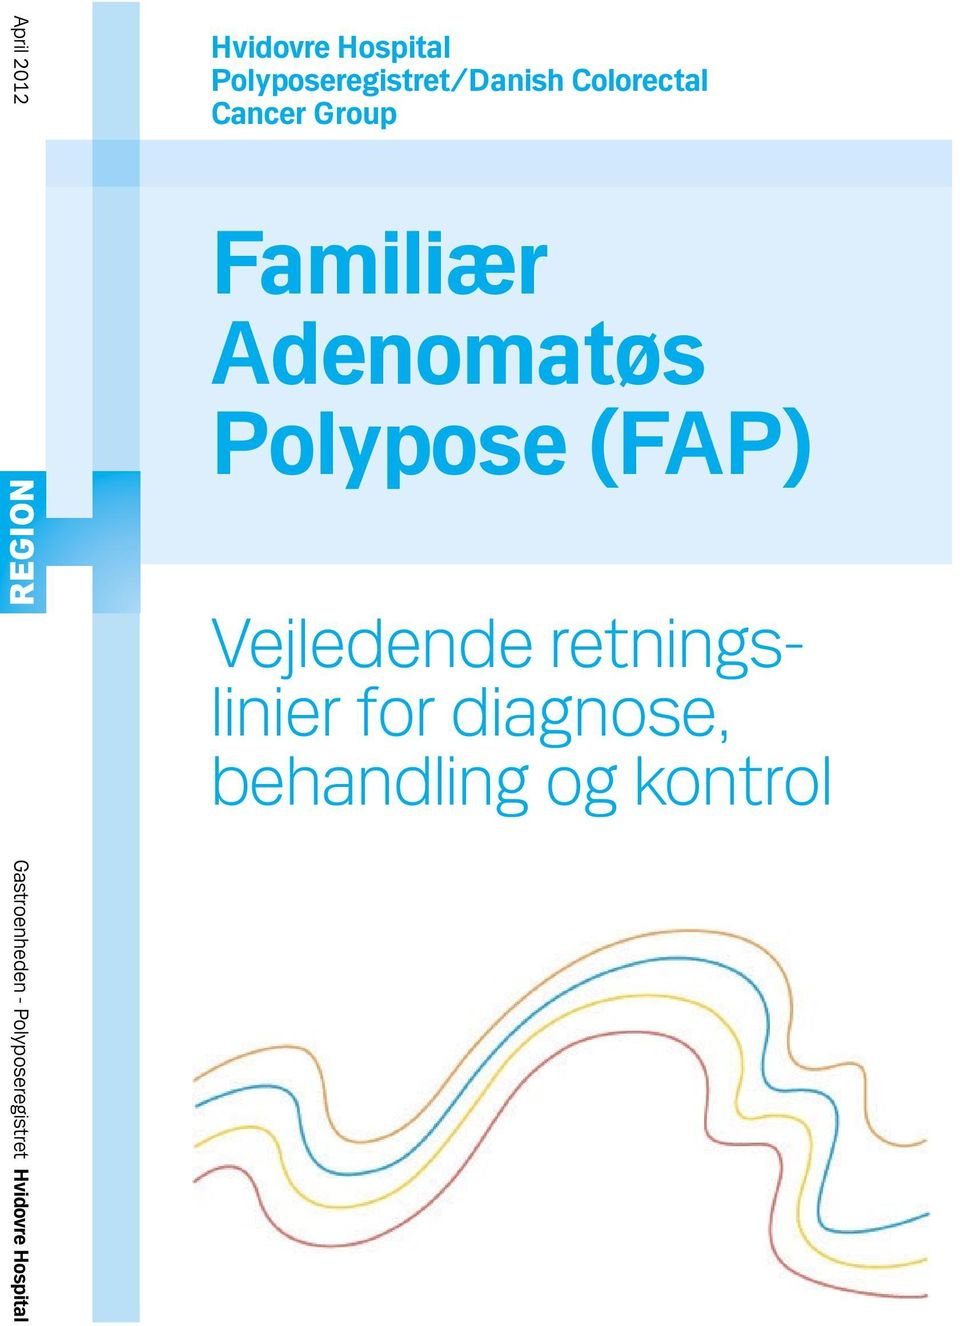 Colorectal Cancer Group Familiær Adenomatøs Polypose